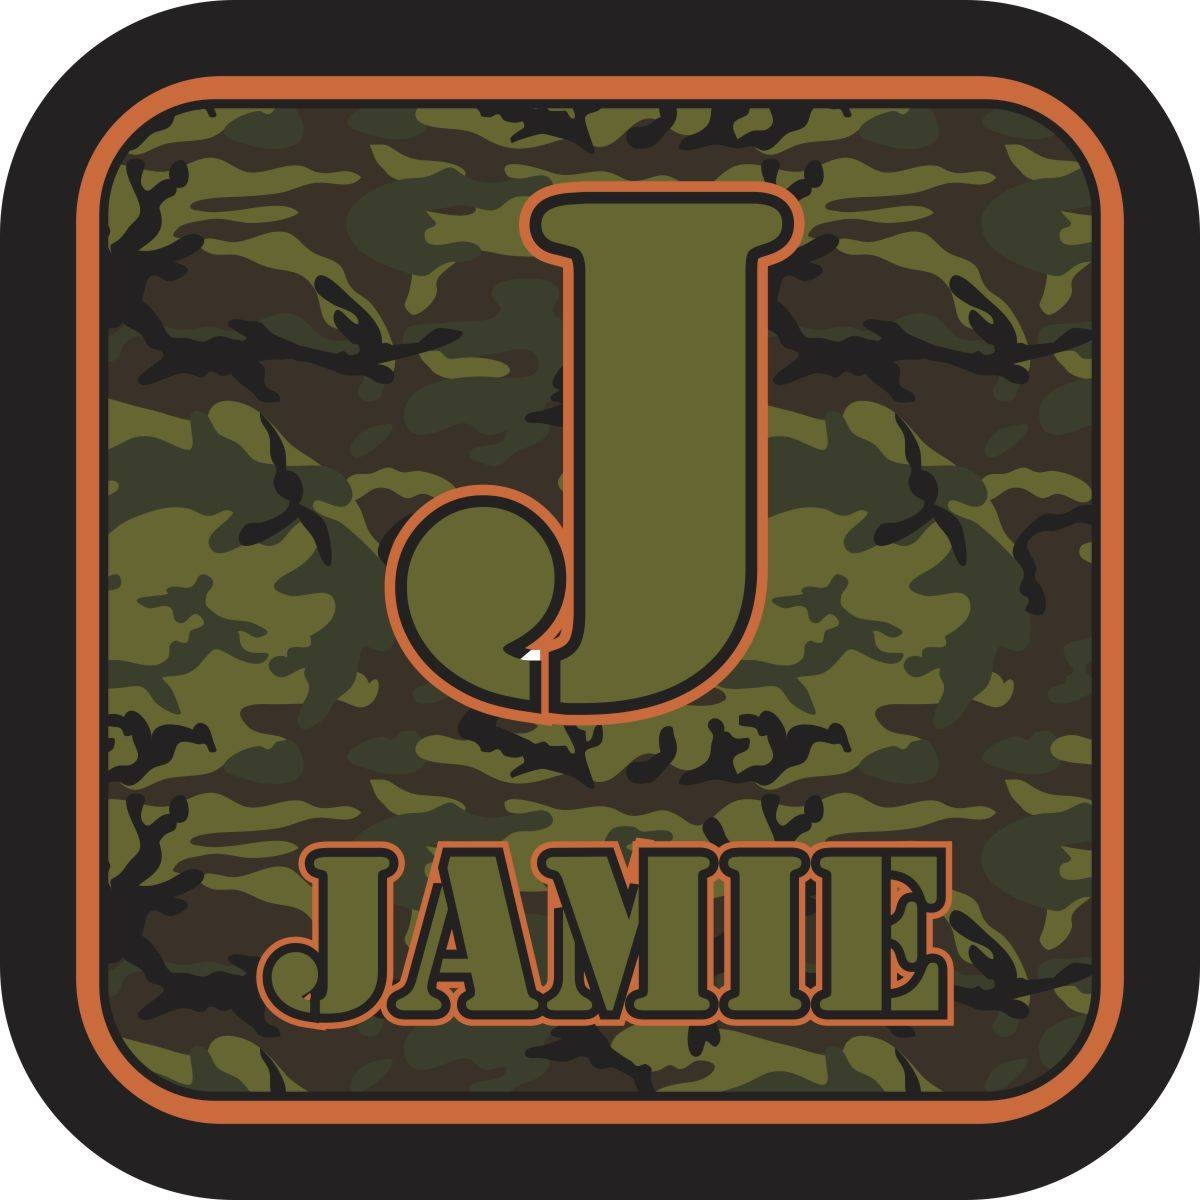 Personalized Green Camo Wall Art | Baby Milano With Latest Camouflage Wall Art (View 16 of 20)